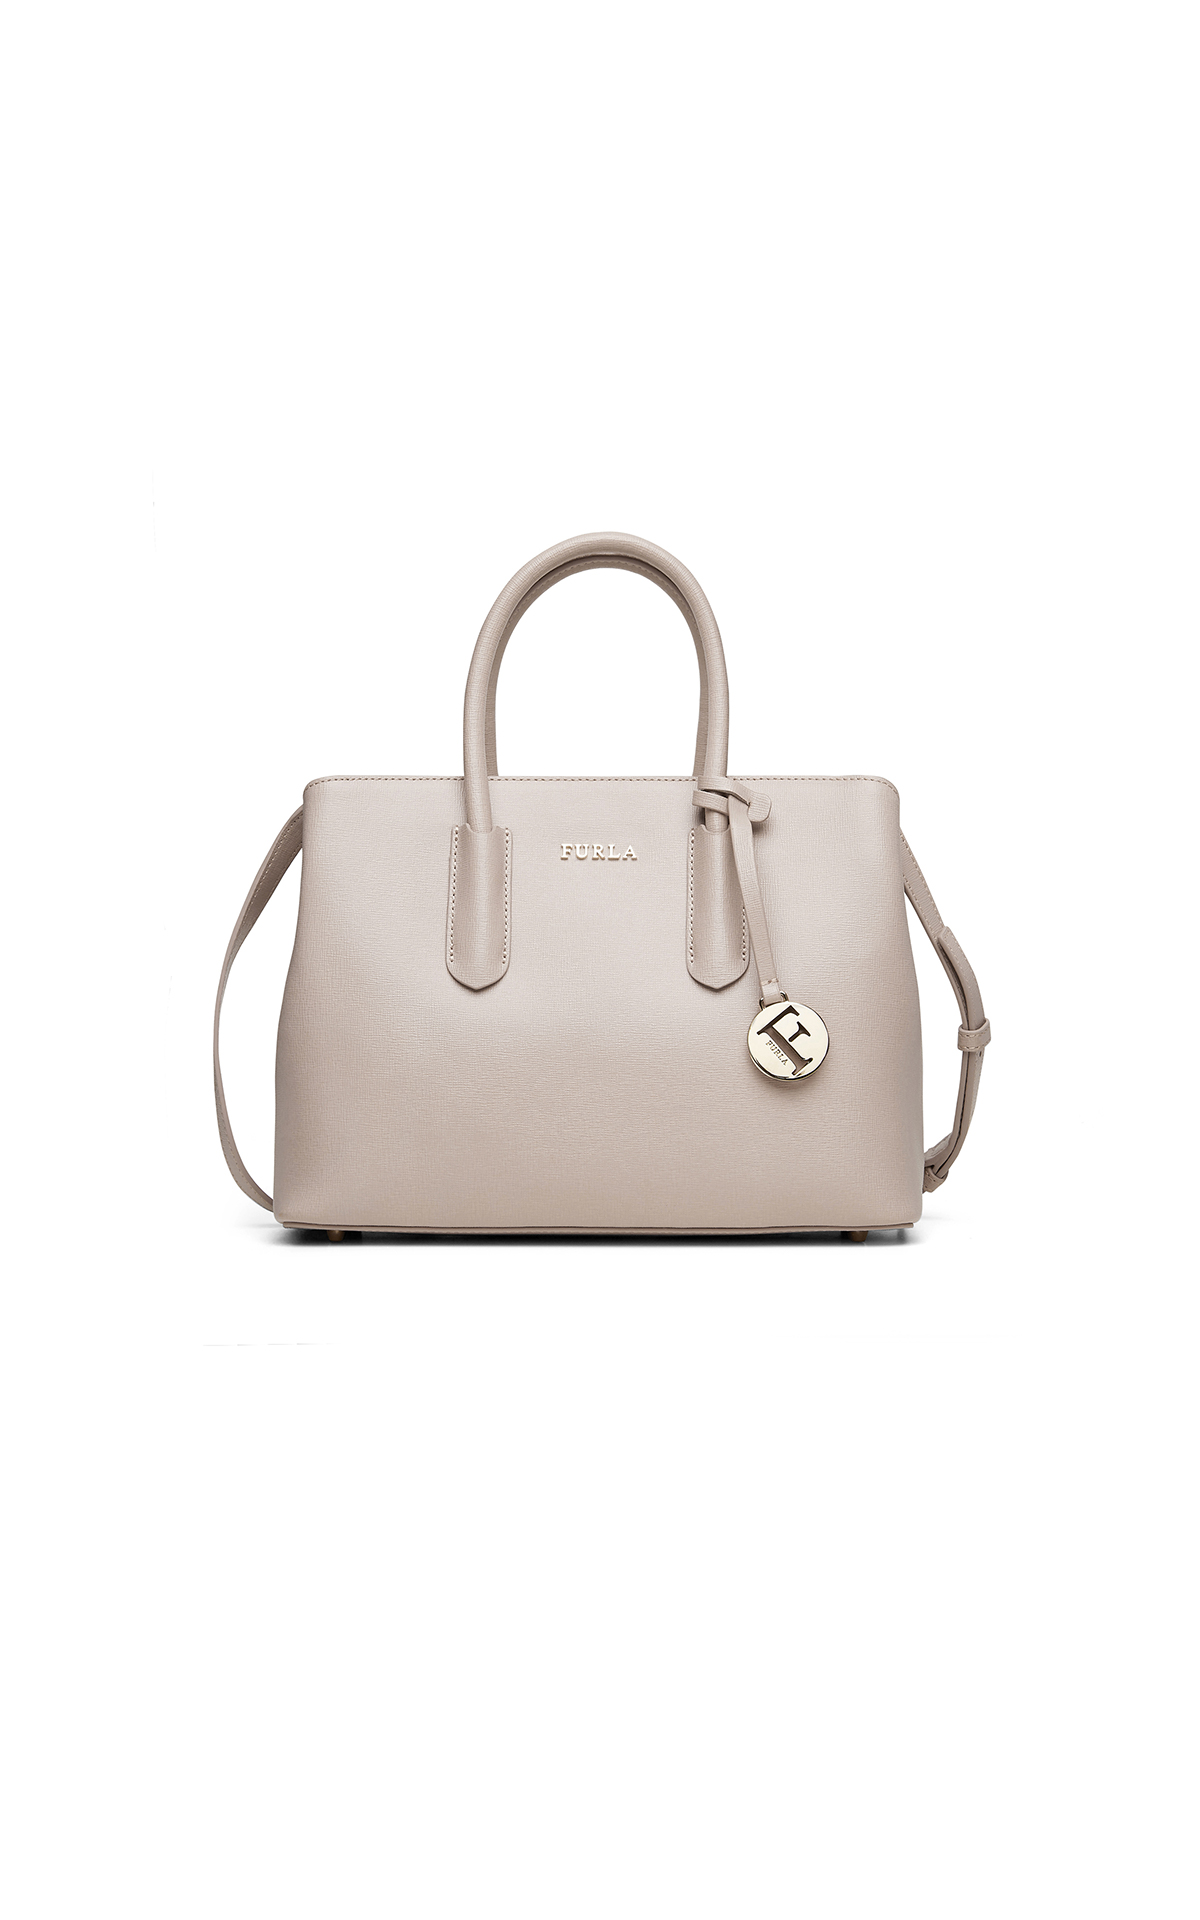 Furla small tessa tote at The Bicester Village Shopping Collection